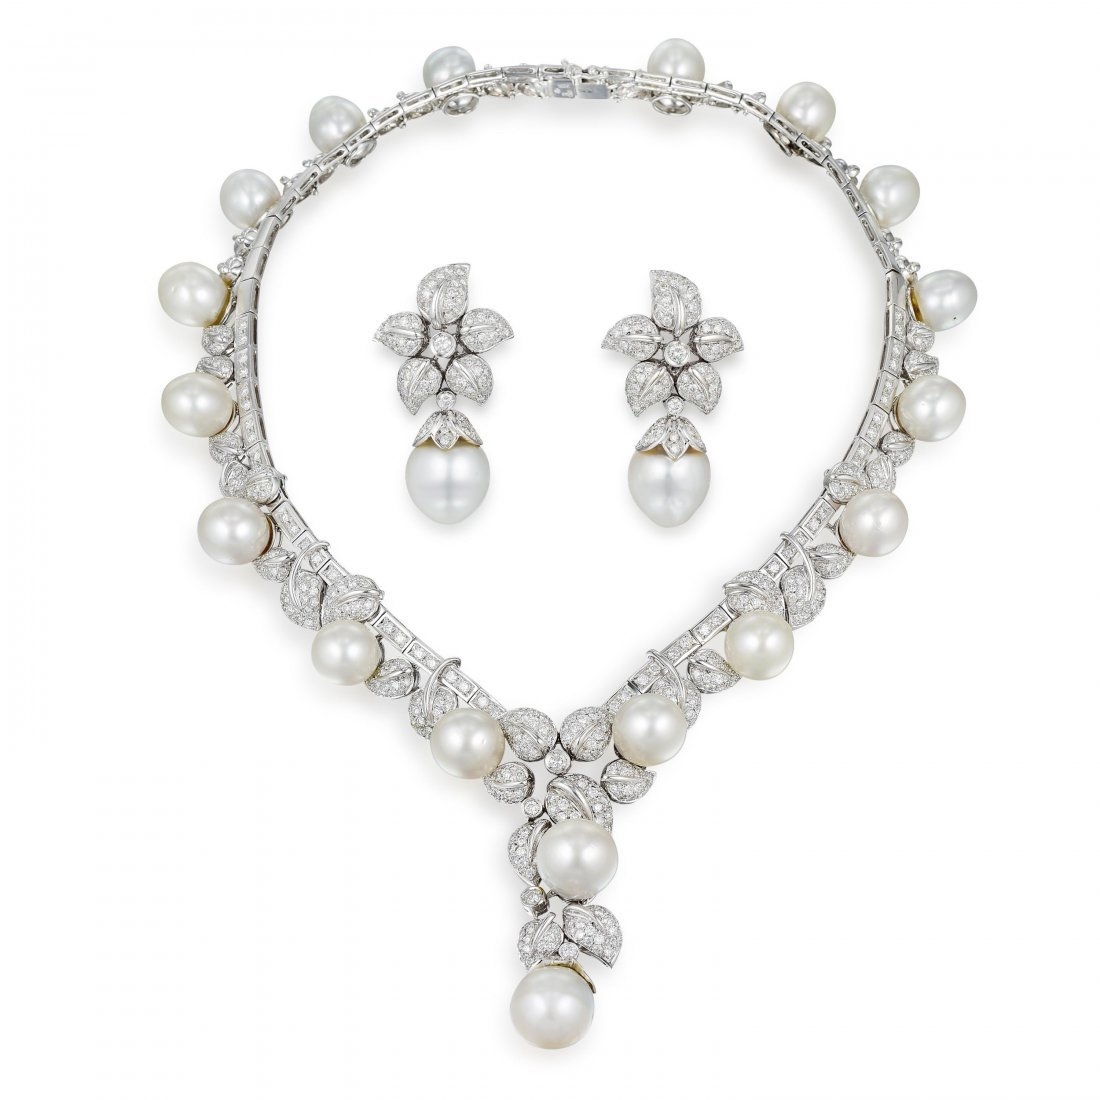 Andreoli South Sea Pearl and Diamond Necklace and